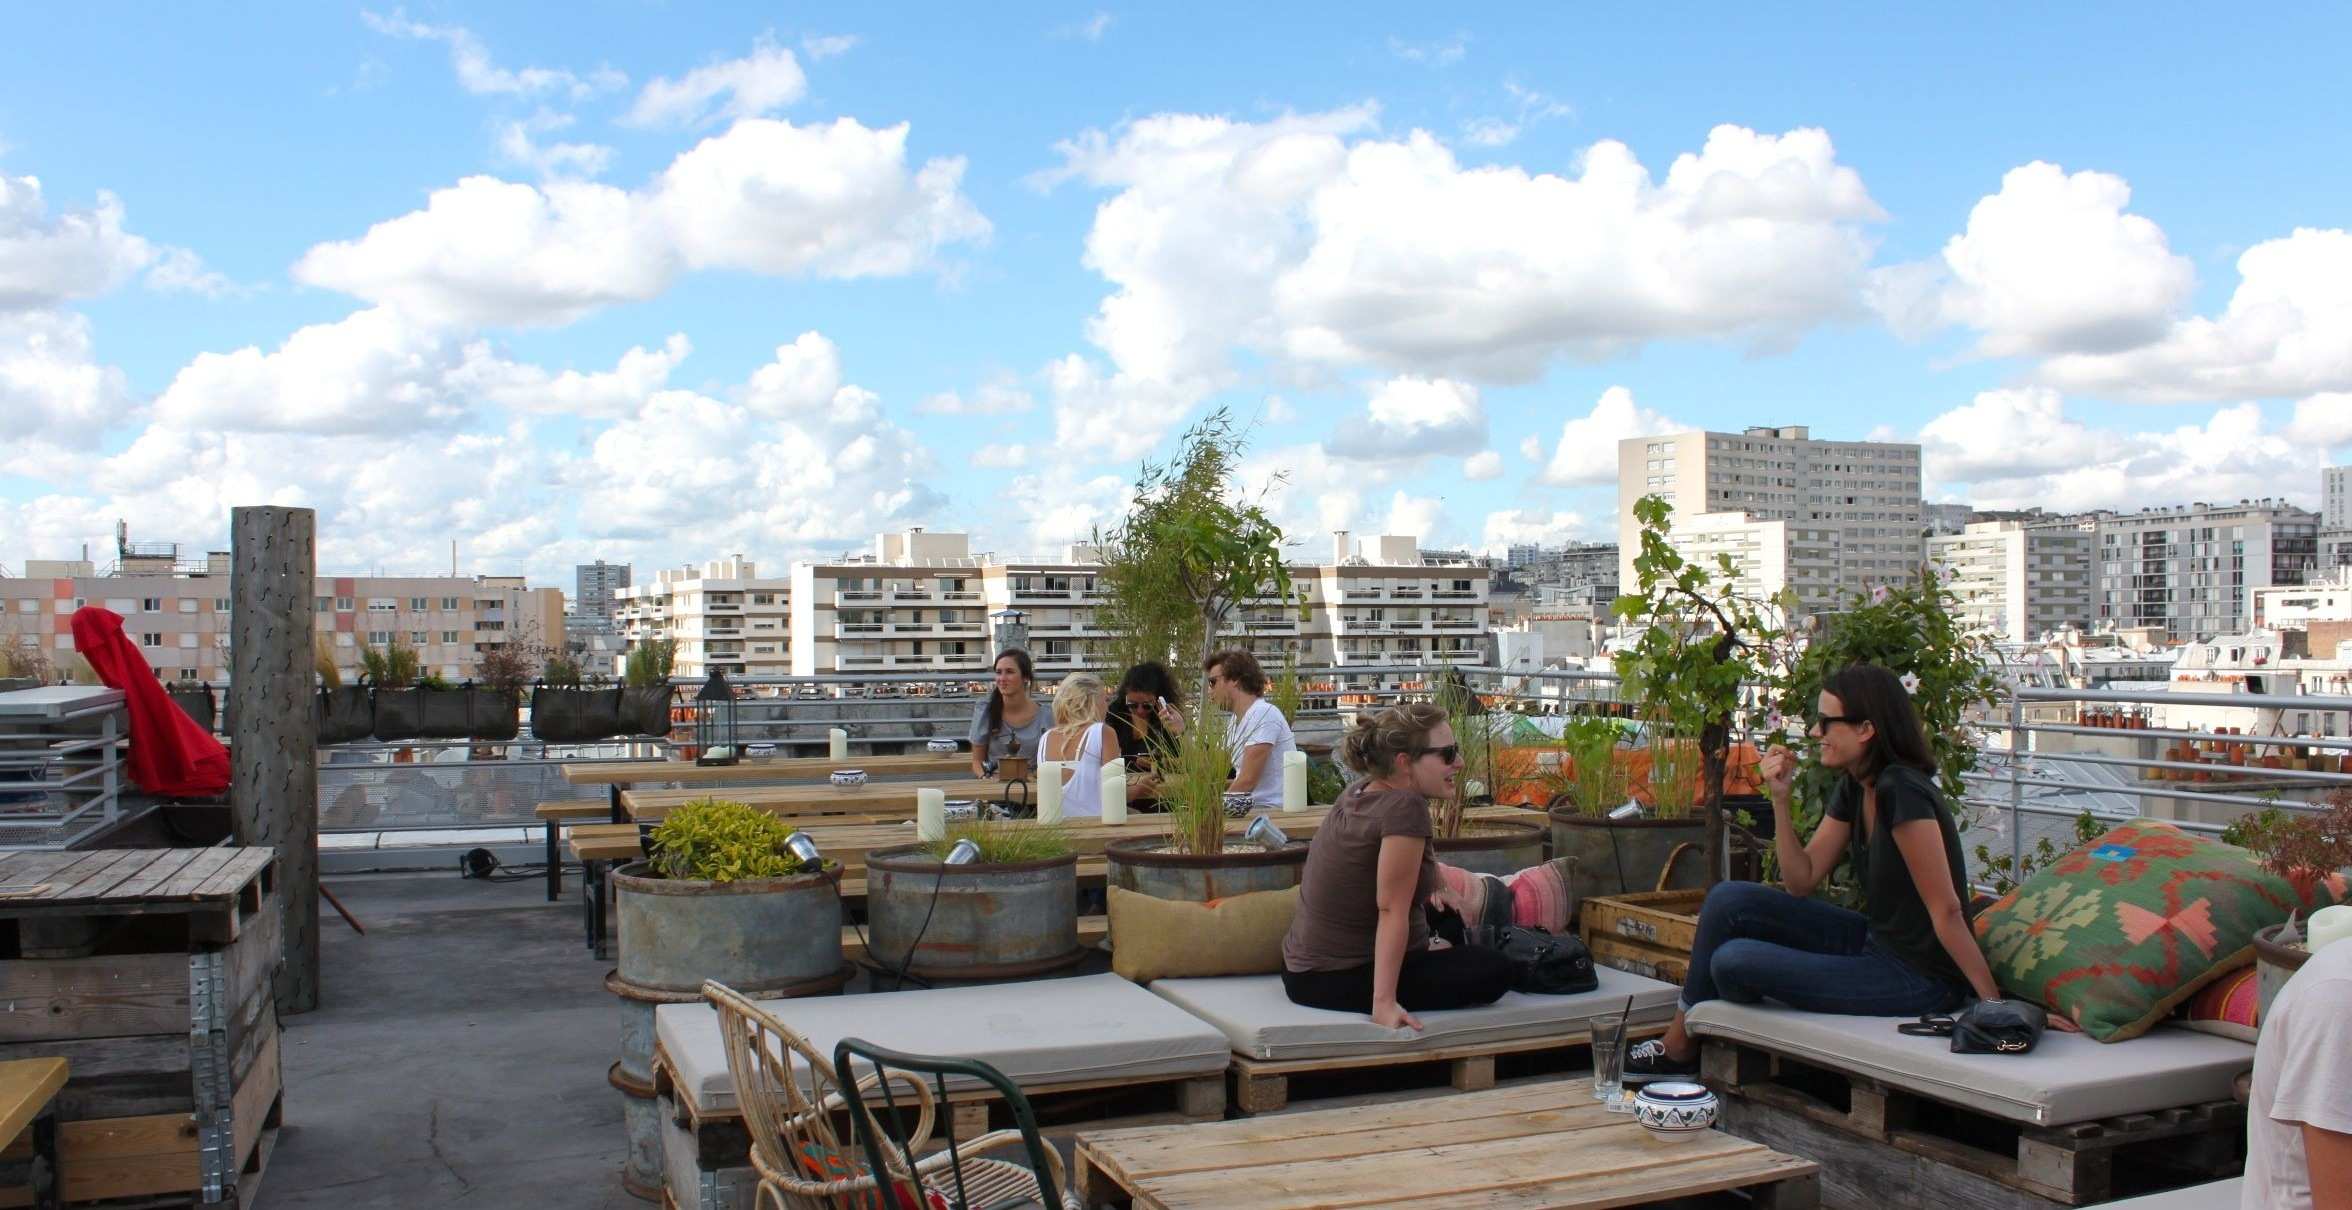 Toit Terrasse Paris Restaurant The Best Rooftop Bars In Paris Bars And Restaurants Time